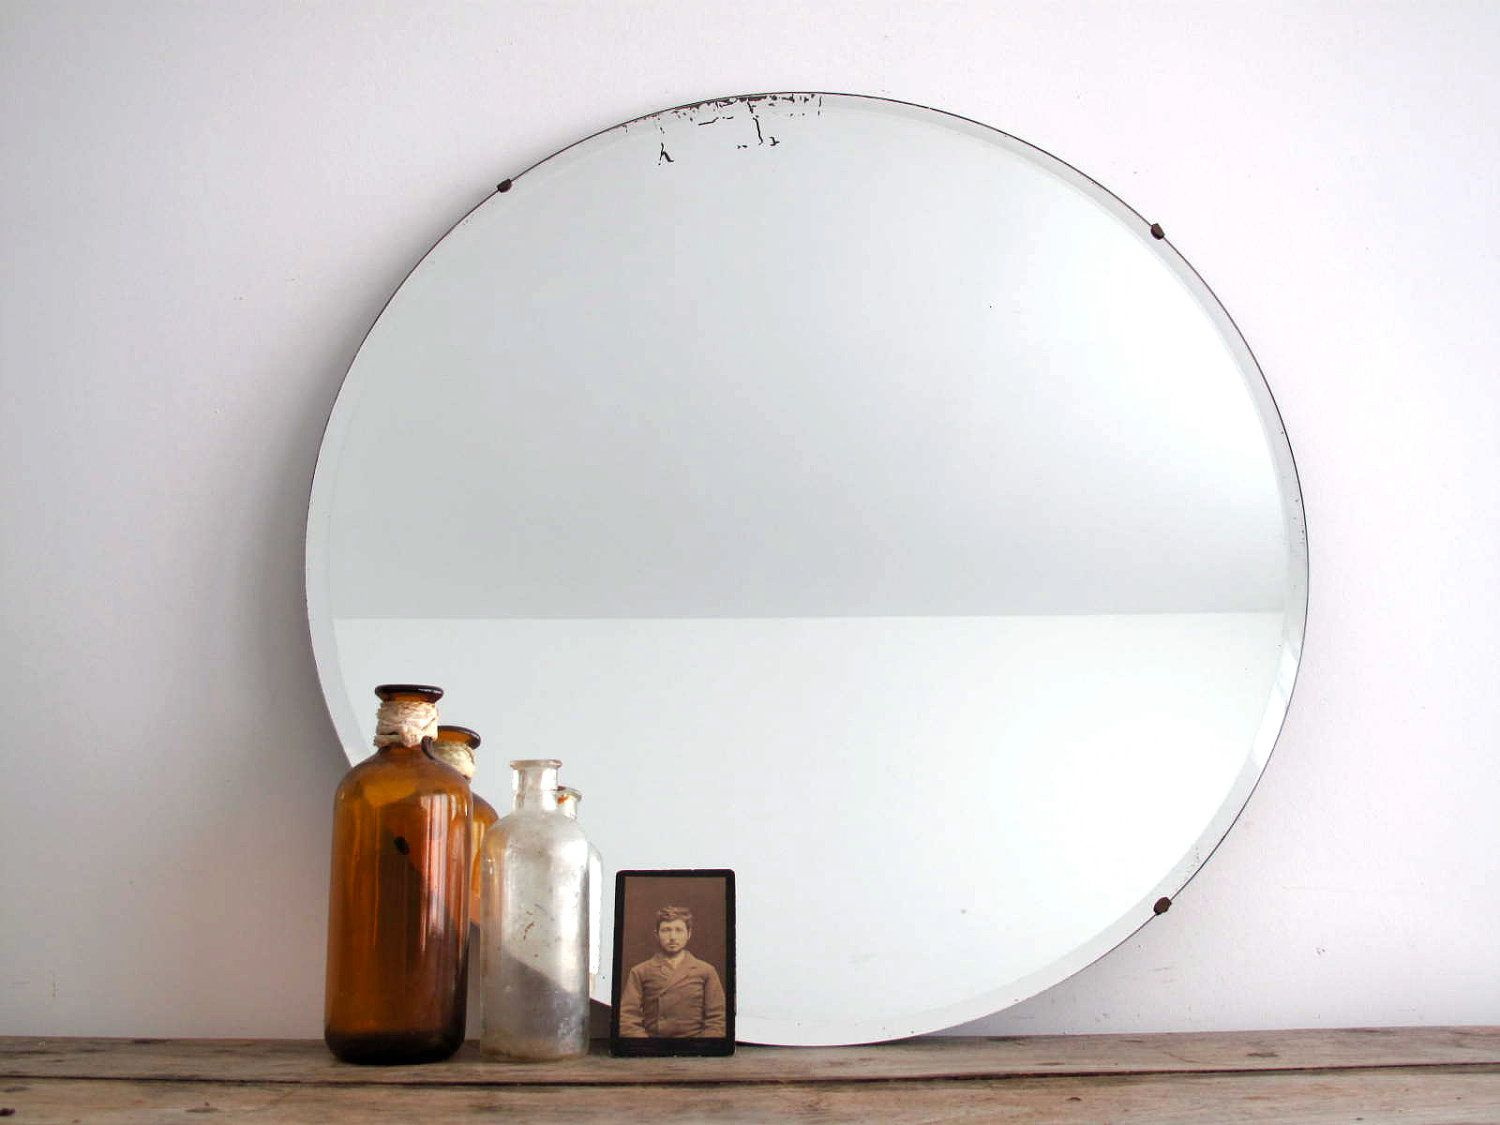 Vintage Round Wall Mirror Frameless Beveled Bathroom Mirror Round Wall Mirror Mirror Large Round Wall Mirror